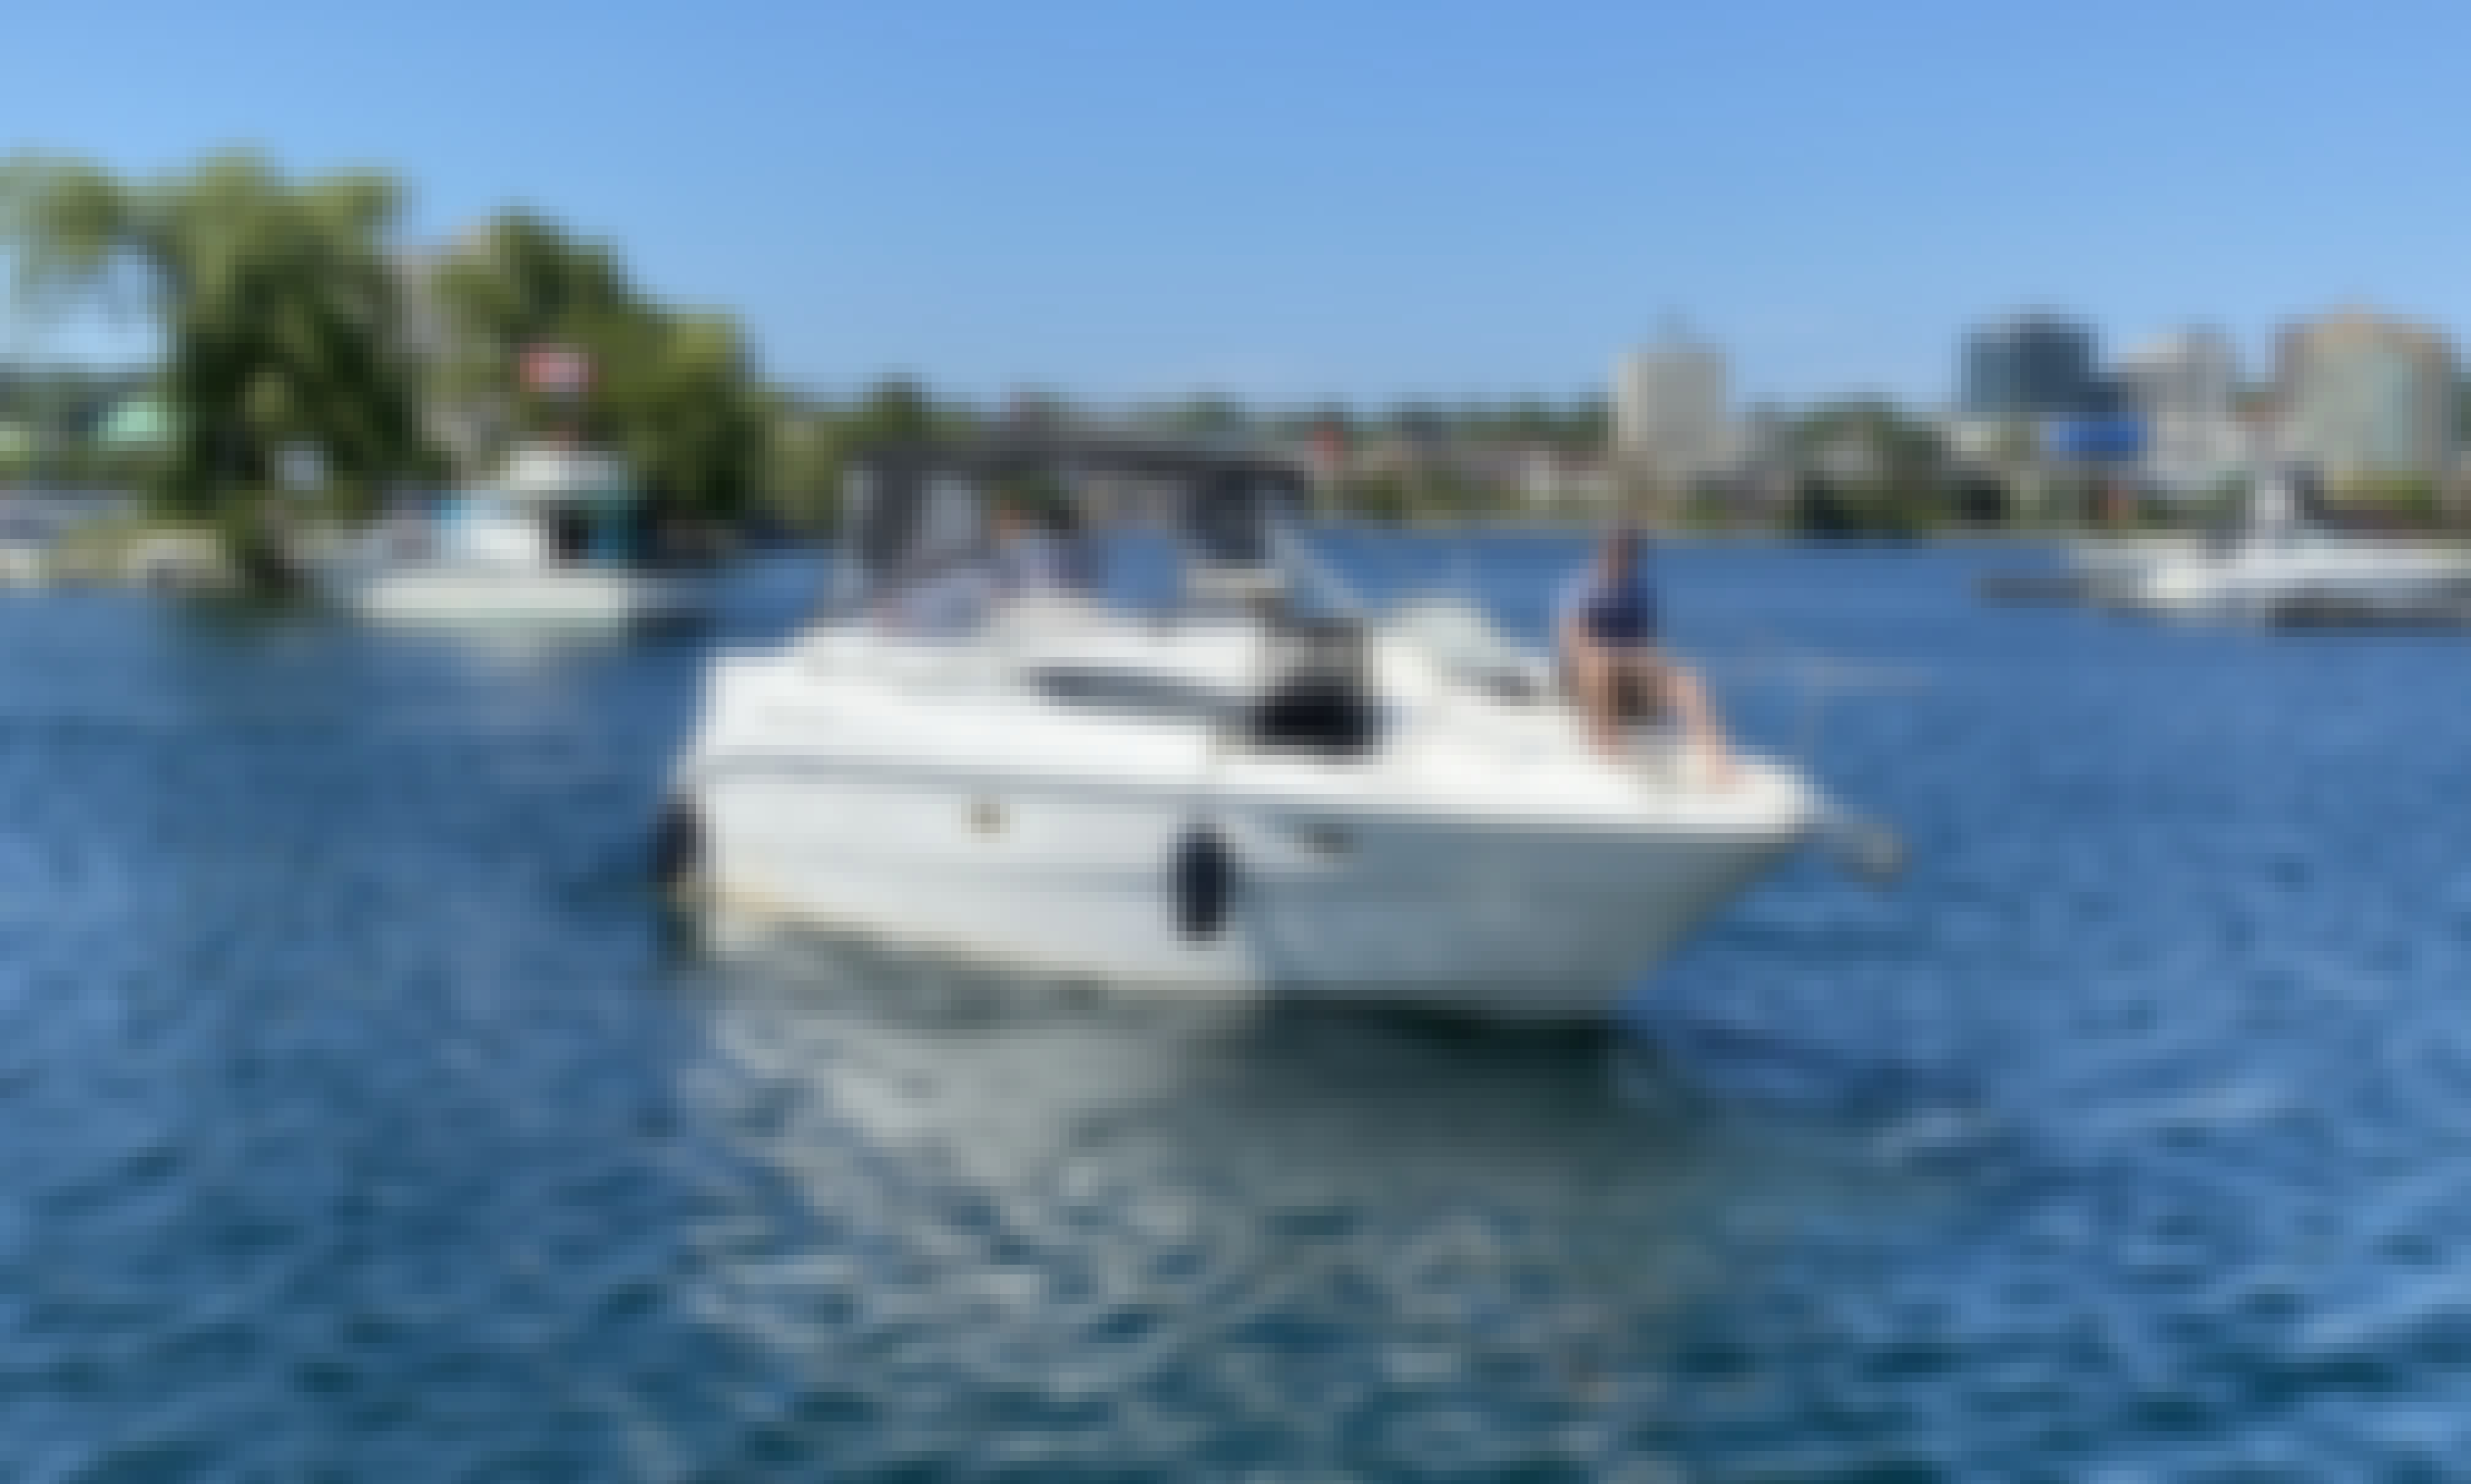 Yacht Charter for 6 People in Barrie, Ontario